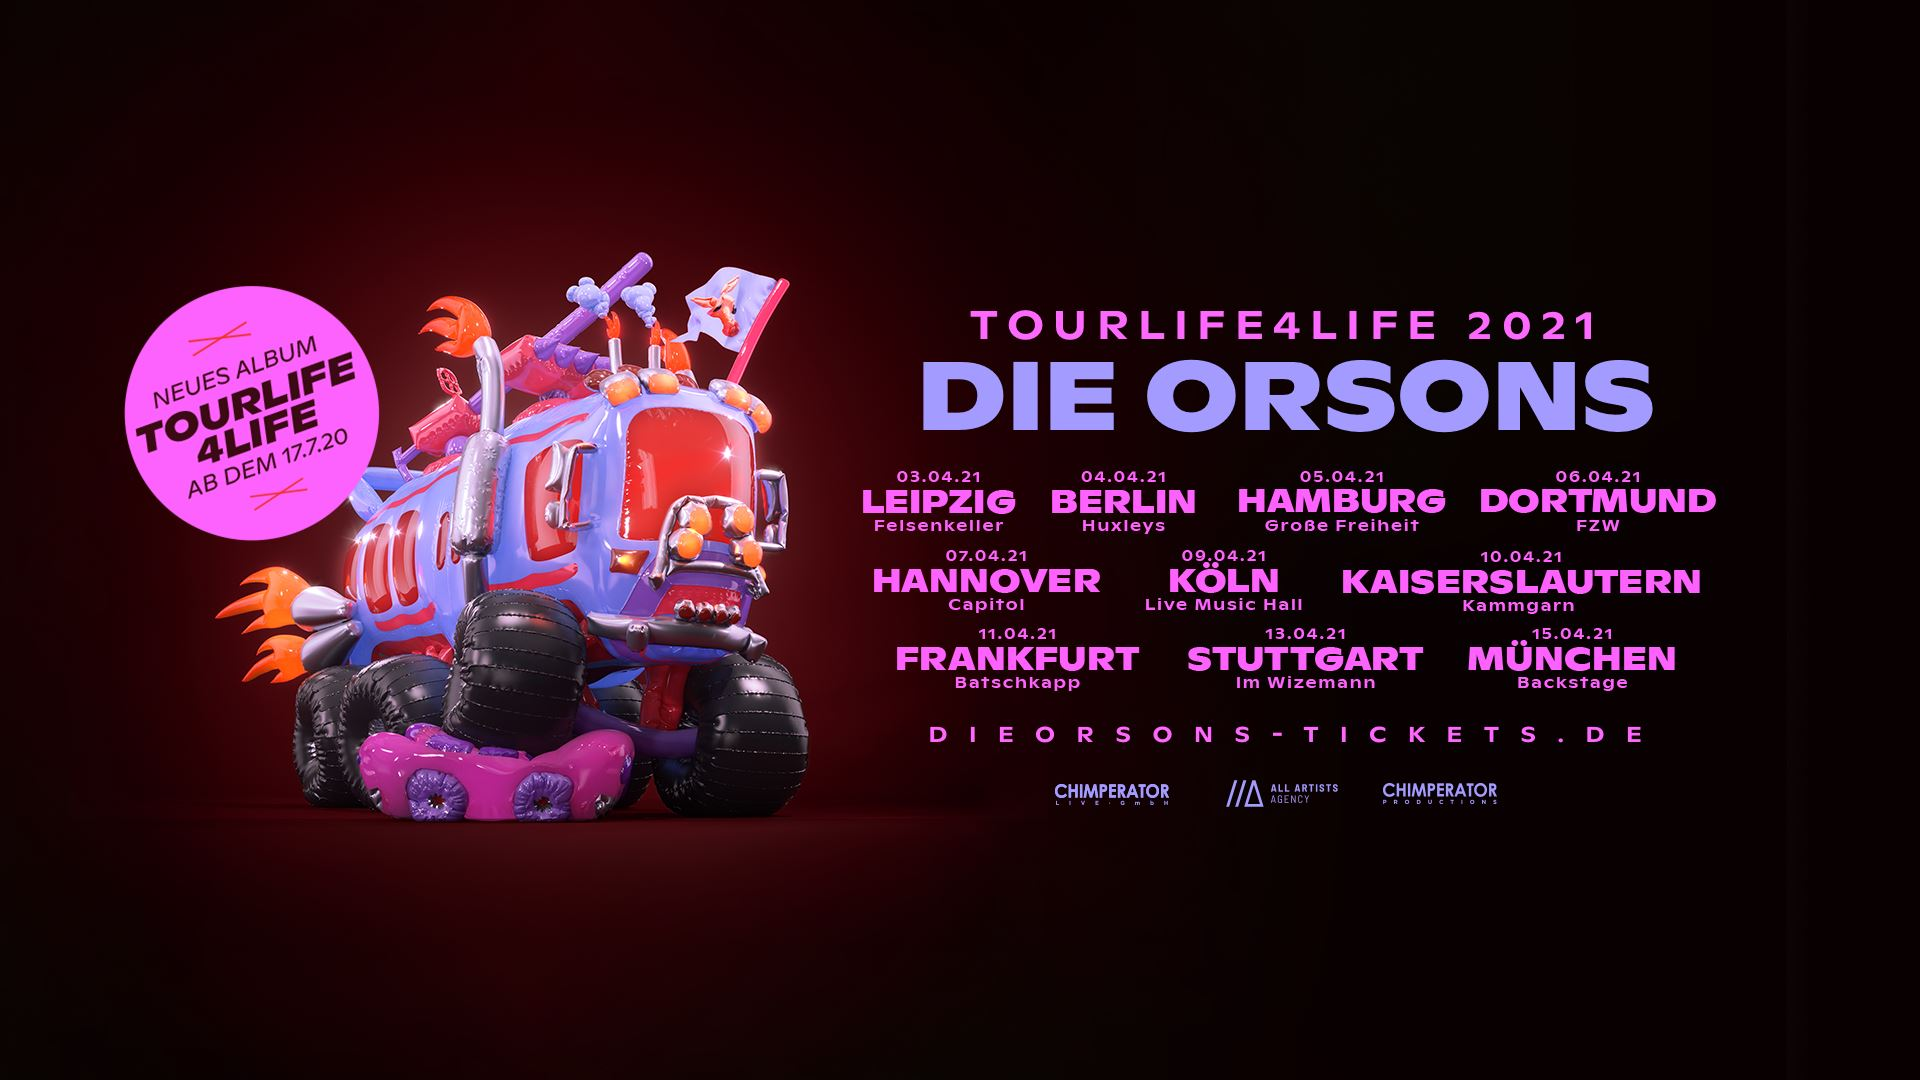 Die Orsons - Tourlife4Life